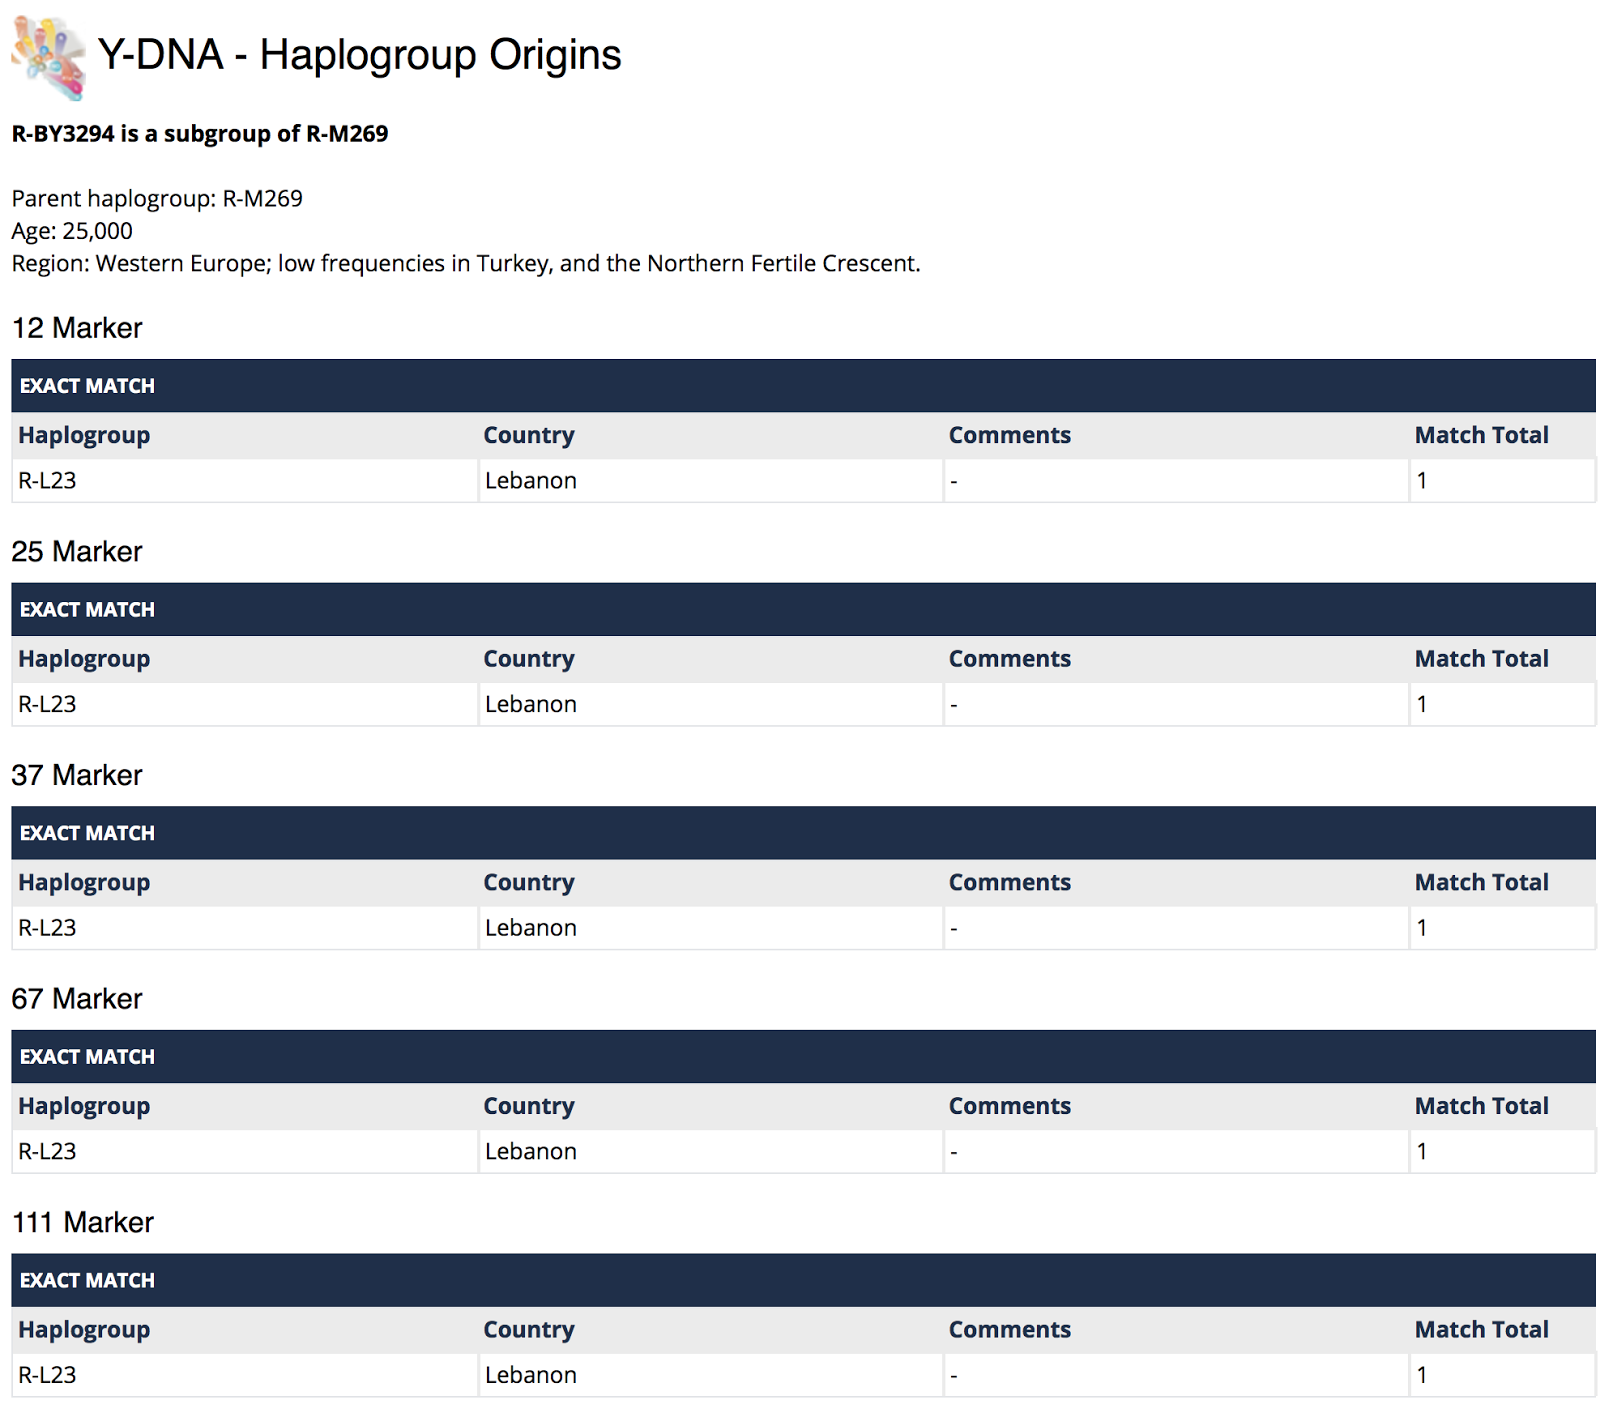 Y-DNA Deep Clade Test - FTDNA - 2011-10-22 - Haplogroup R1b1a2a1